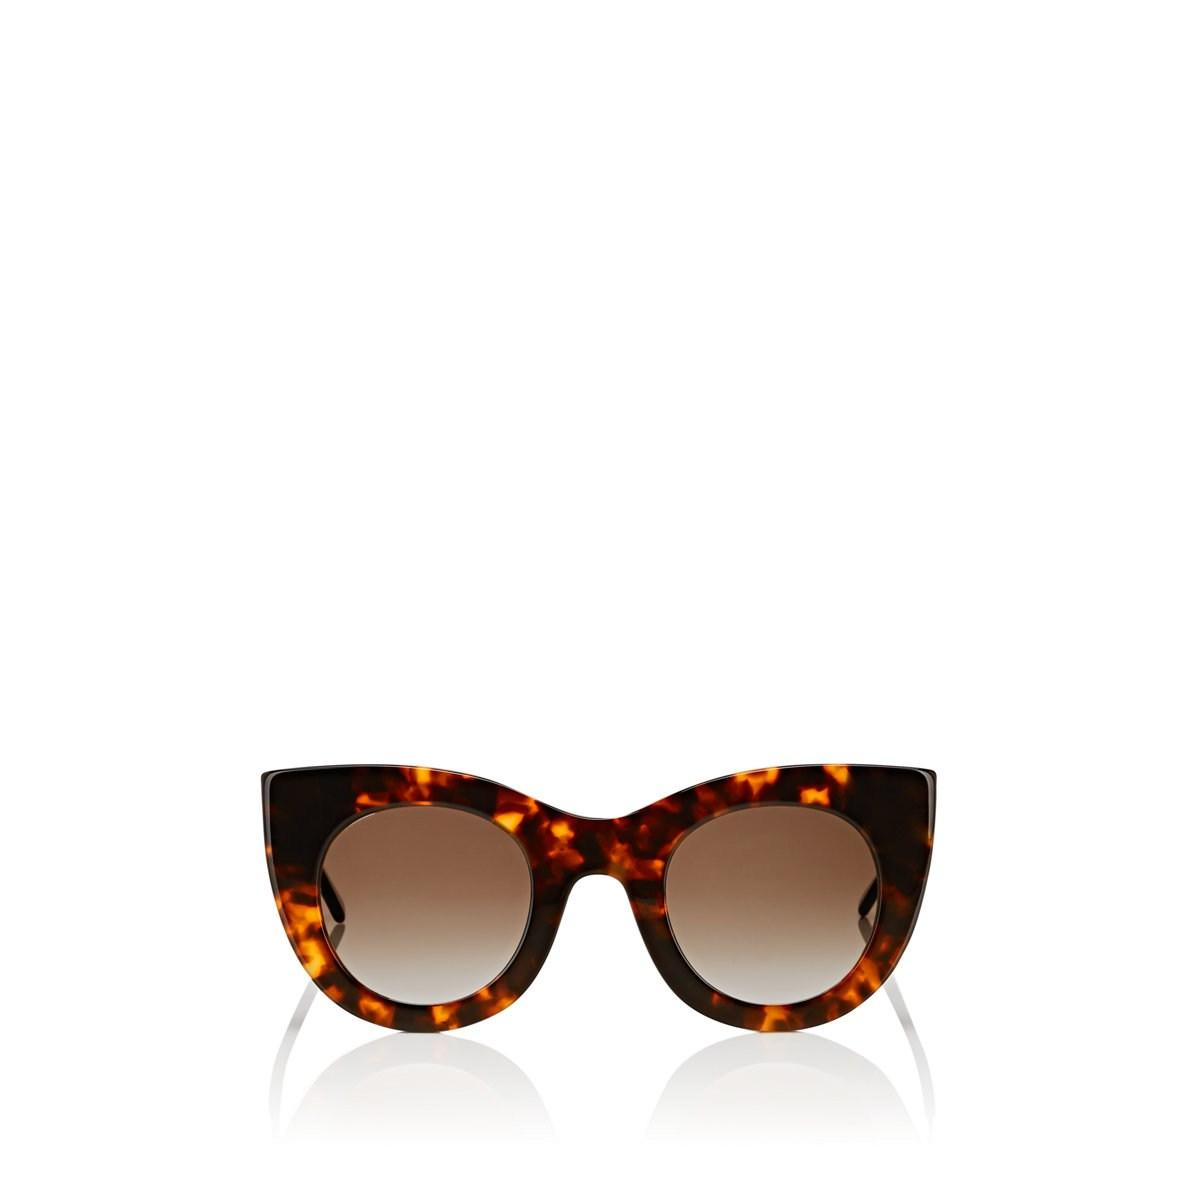 f3915b856c0f Thierry Lasry Cheeky Sunglasses in Brown - Lyst